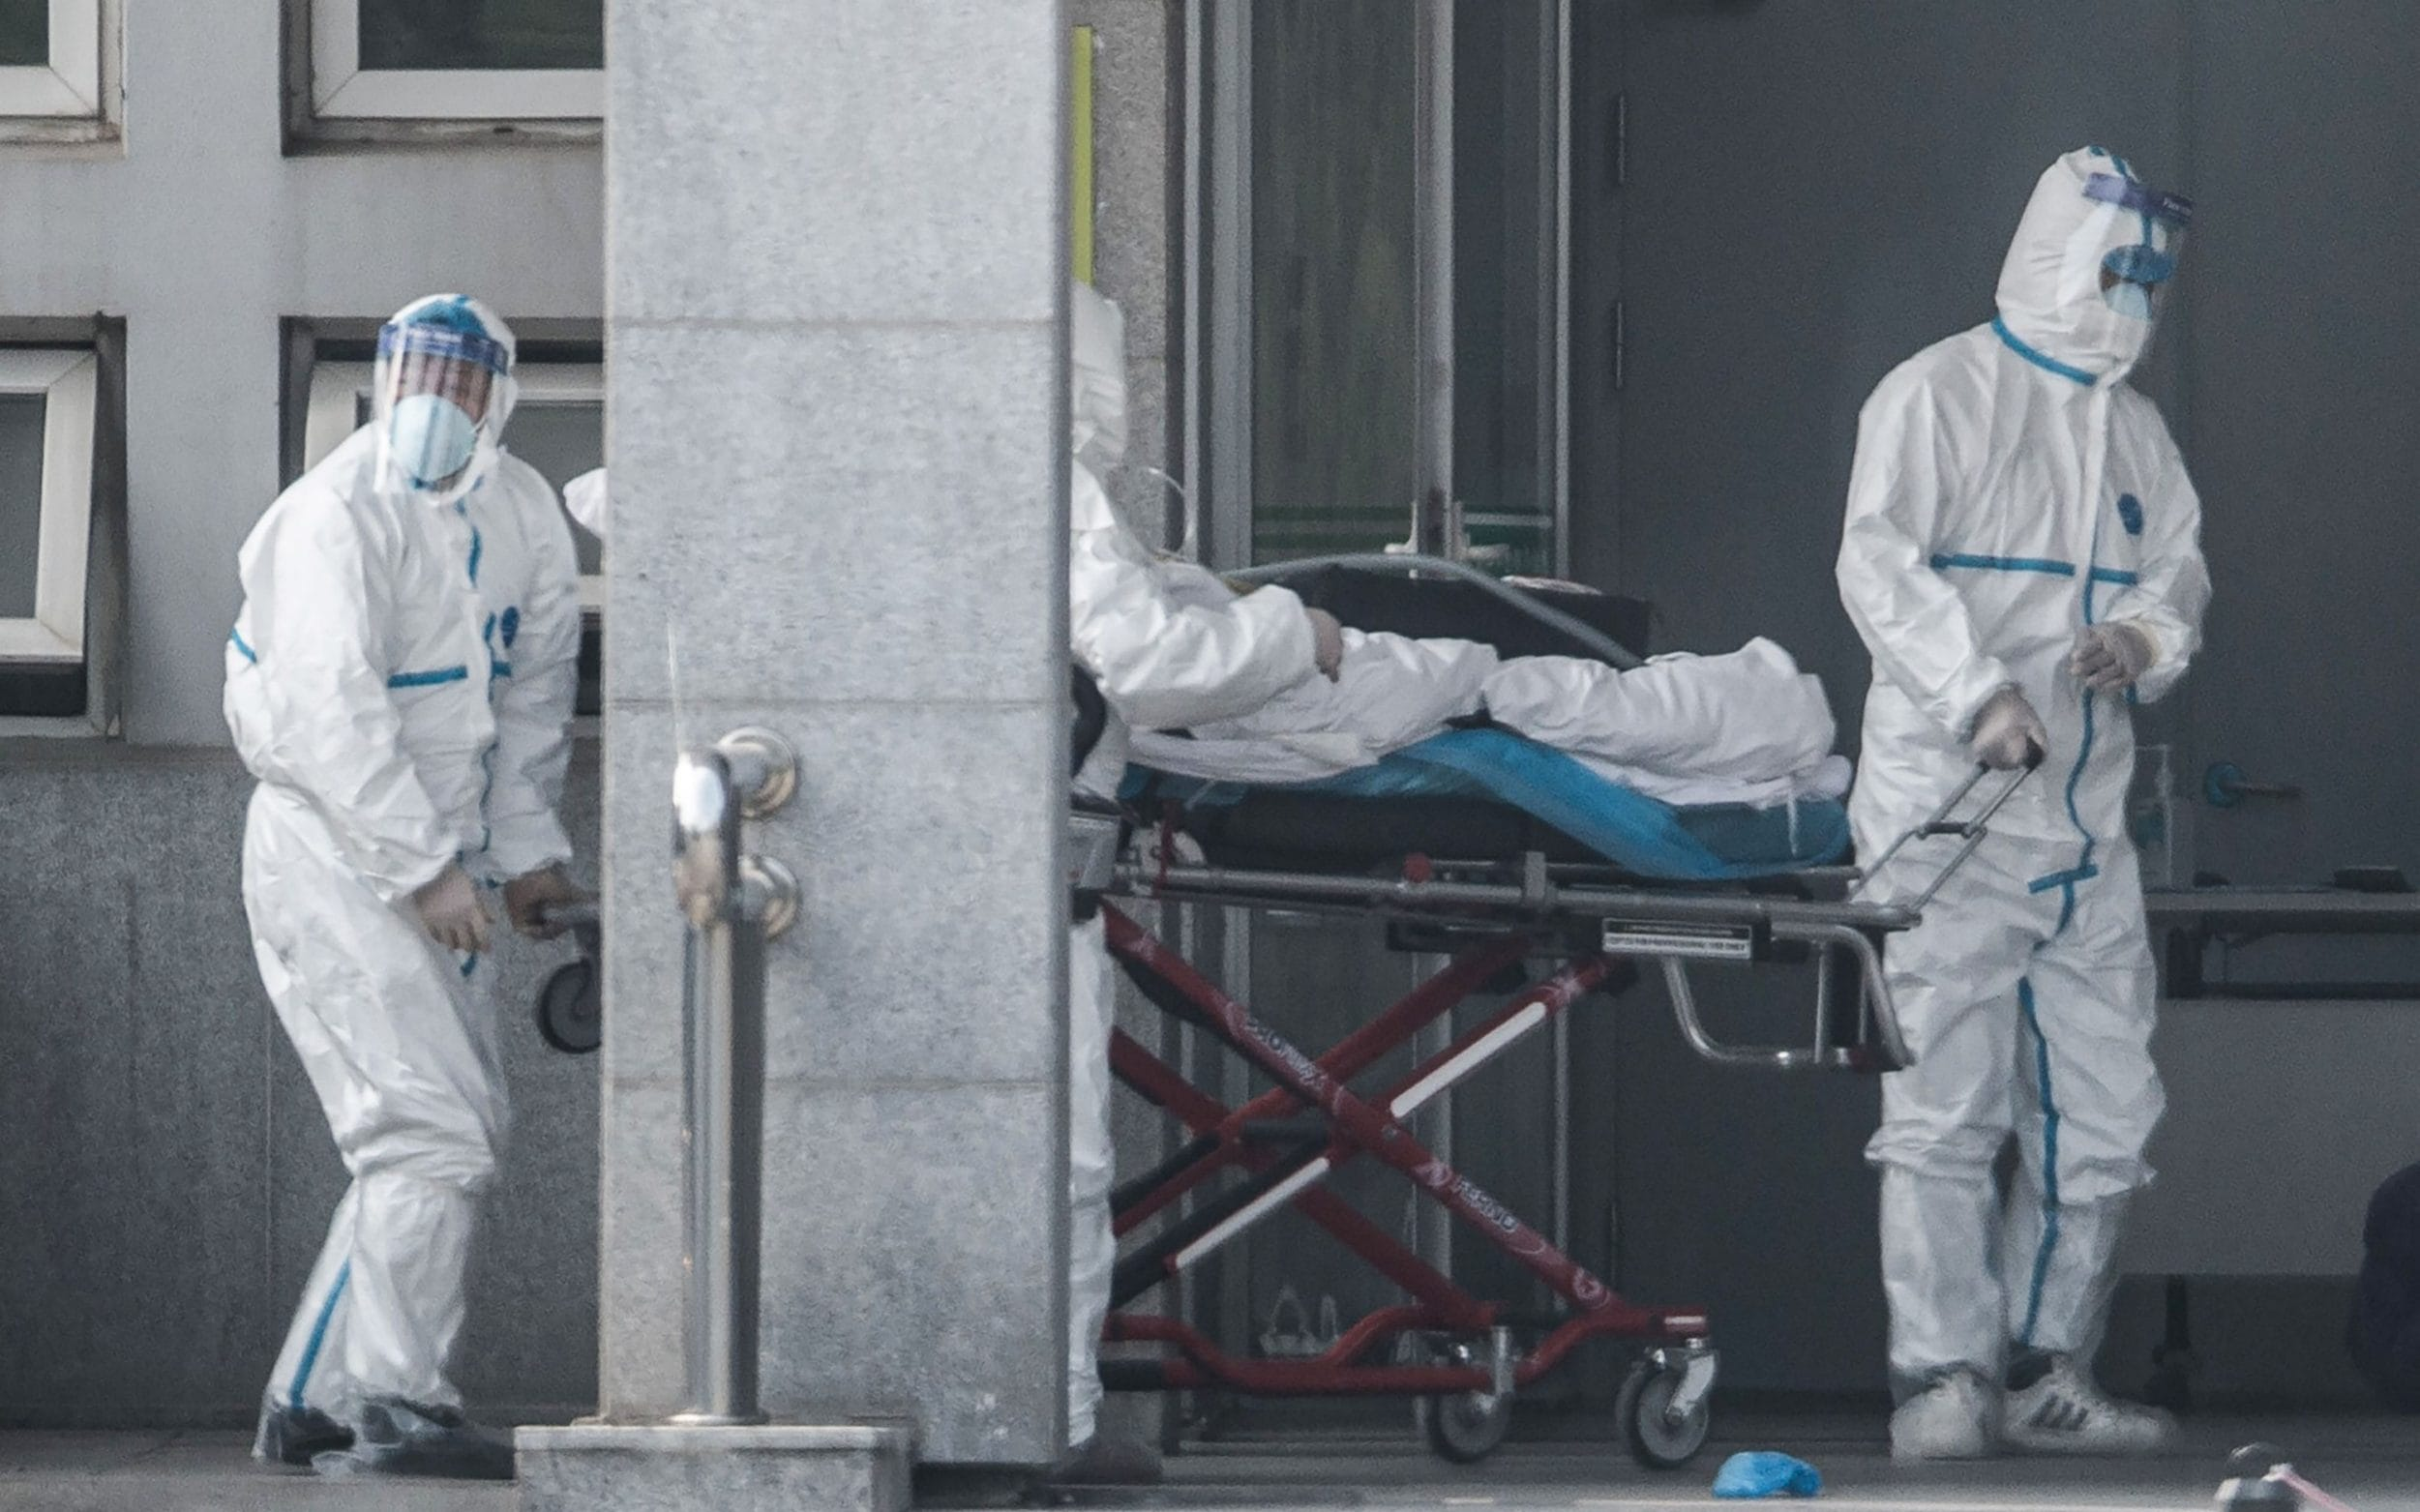 Mysterious Sars-like virus spreading across China amid sharp rise in new cases and a third death